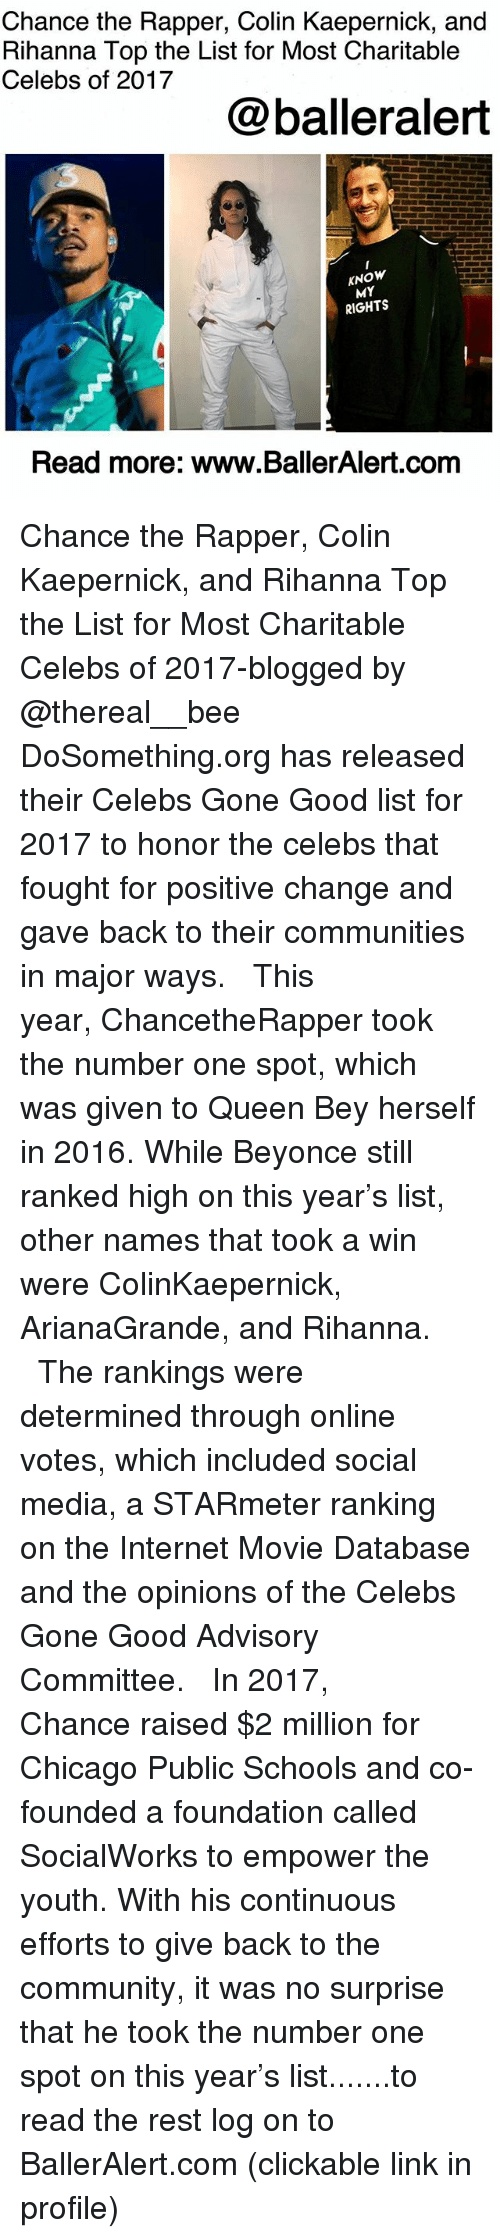 rankings: Chance the Rapper, Colin Kaepernick, and  Rihanna Top the List for Most Charitable  Celebs of 2017  @balleralert  KNOW  MY  RIGHTS  Read more: www.BallerAlert.com Chance the Rapper, Colin Kaepernick, and Rihanna Top the List for Most Charitable Celebs of 2017-blogged by @thereal__bee ⠀⠀⠀⠀⠀⠀⠀⠀⠀ ⠀⠀ DoSomething.org has released their Celebs Gone Good list for 2017 to honor the celebs that fought for positive change and gave back to their communities in major ways. ⠀⠀⠀⠀⠀⠀⠀⠀⠀ ⠀⠀ This year, ChancetheRapper took the number one spot, which was given to Queen Bey herself in 2016. While Beyonce still ranked high on this year's list, other names that took a win were ColinKaepernick, ArianaGrande, and Rihanna. ⠀⠀⠀⠀⠀⠀⠀⠀⠀ ⠀⠀ The rankings were determined through online votes, which included social media, a STARmeter ranking on the Internet Movie Database and the opinions of the Celebs Gone Good Advisory Committee. ⠀⠀⠀⠀⠀⠀⠀⠀⠀ ⠀⠀ In 2017, Chance raised $2 million for Chicago Public Schools and co-founded a foundation called SocialWorks to empower the youth. With his continuous efforts to give back to the community, it was no surprise that he took the number one spot on this year's list.......to read the rest log on to BallerAlert.com (clickable link in profile)